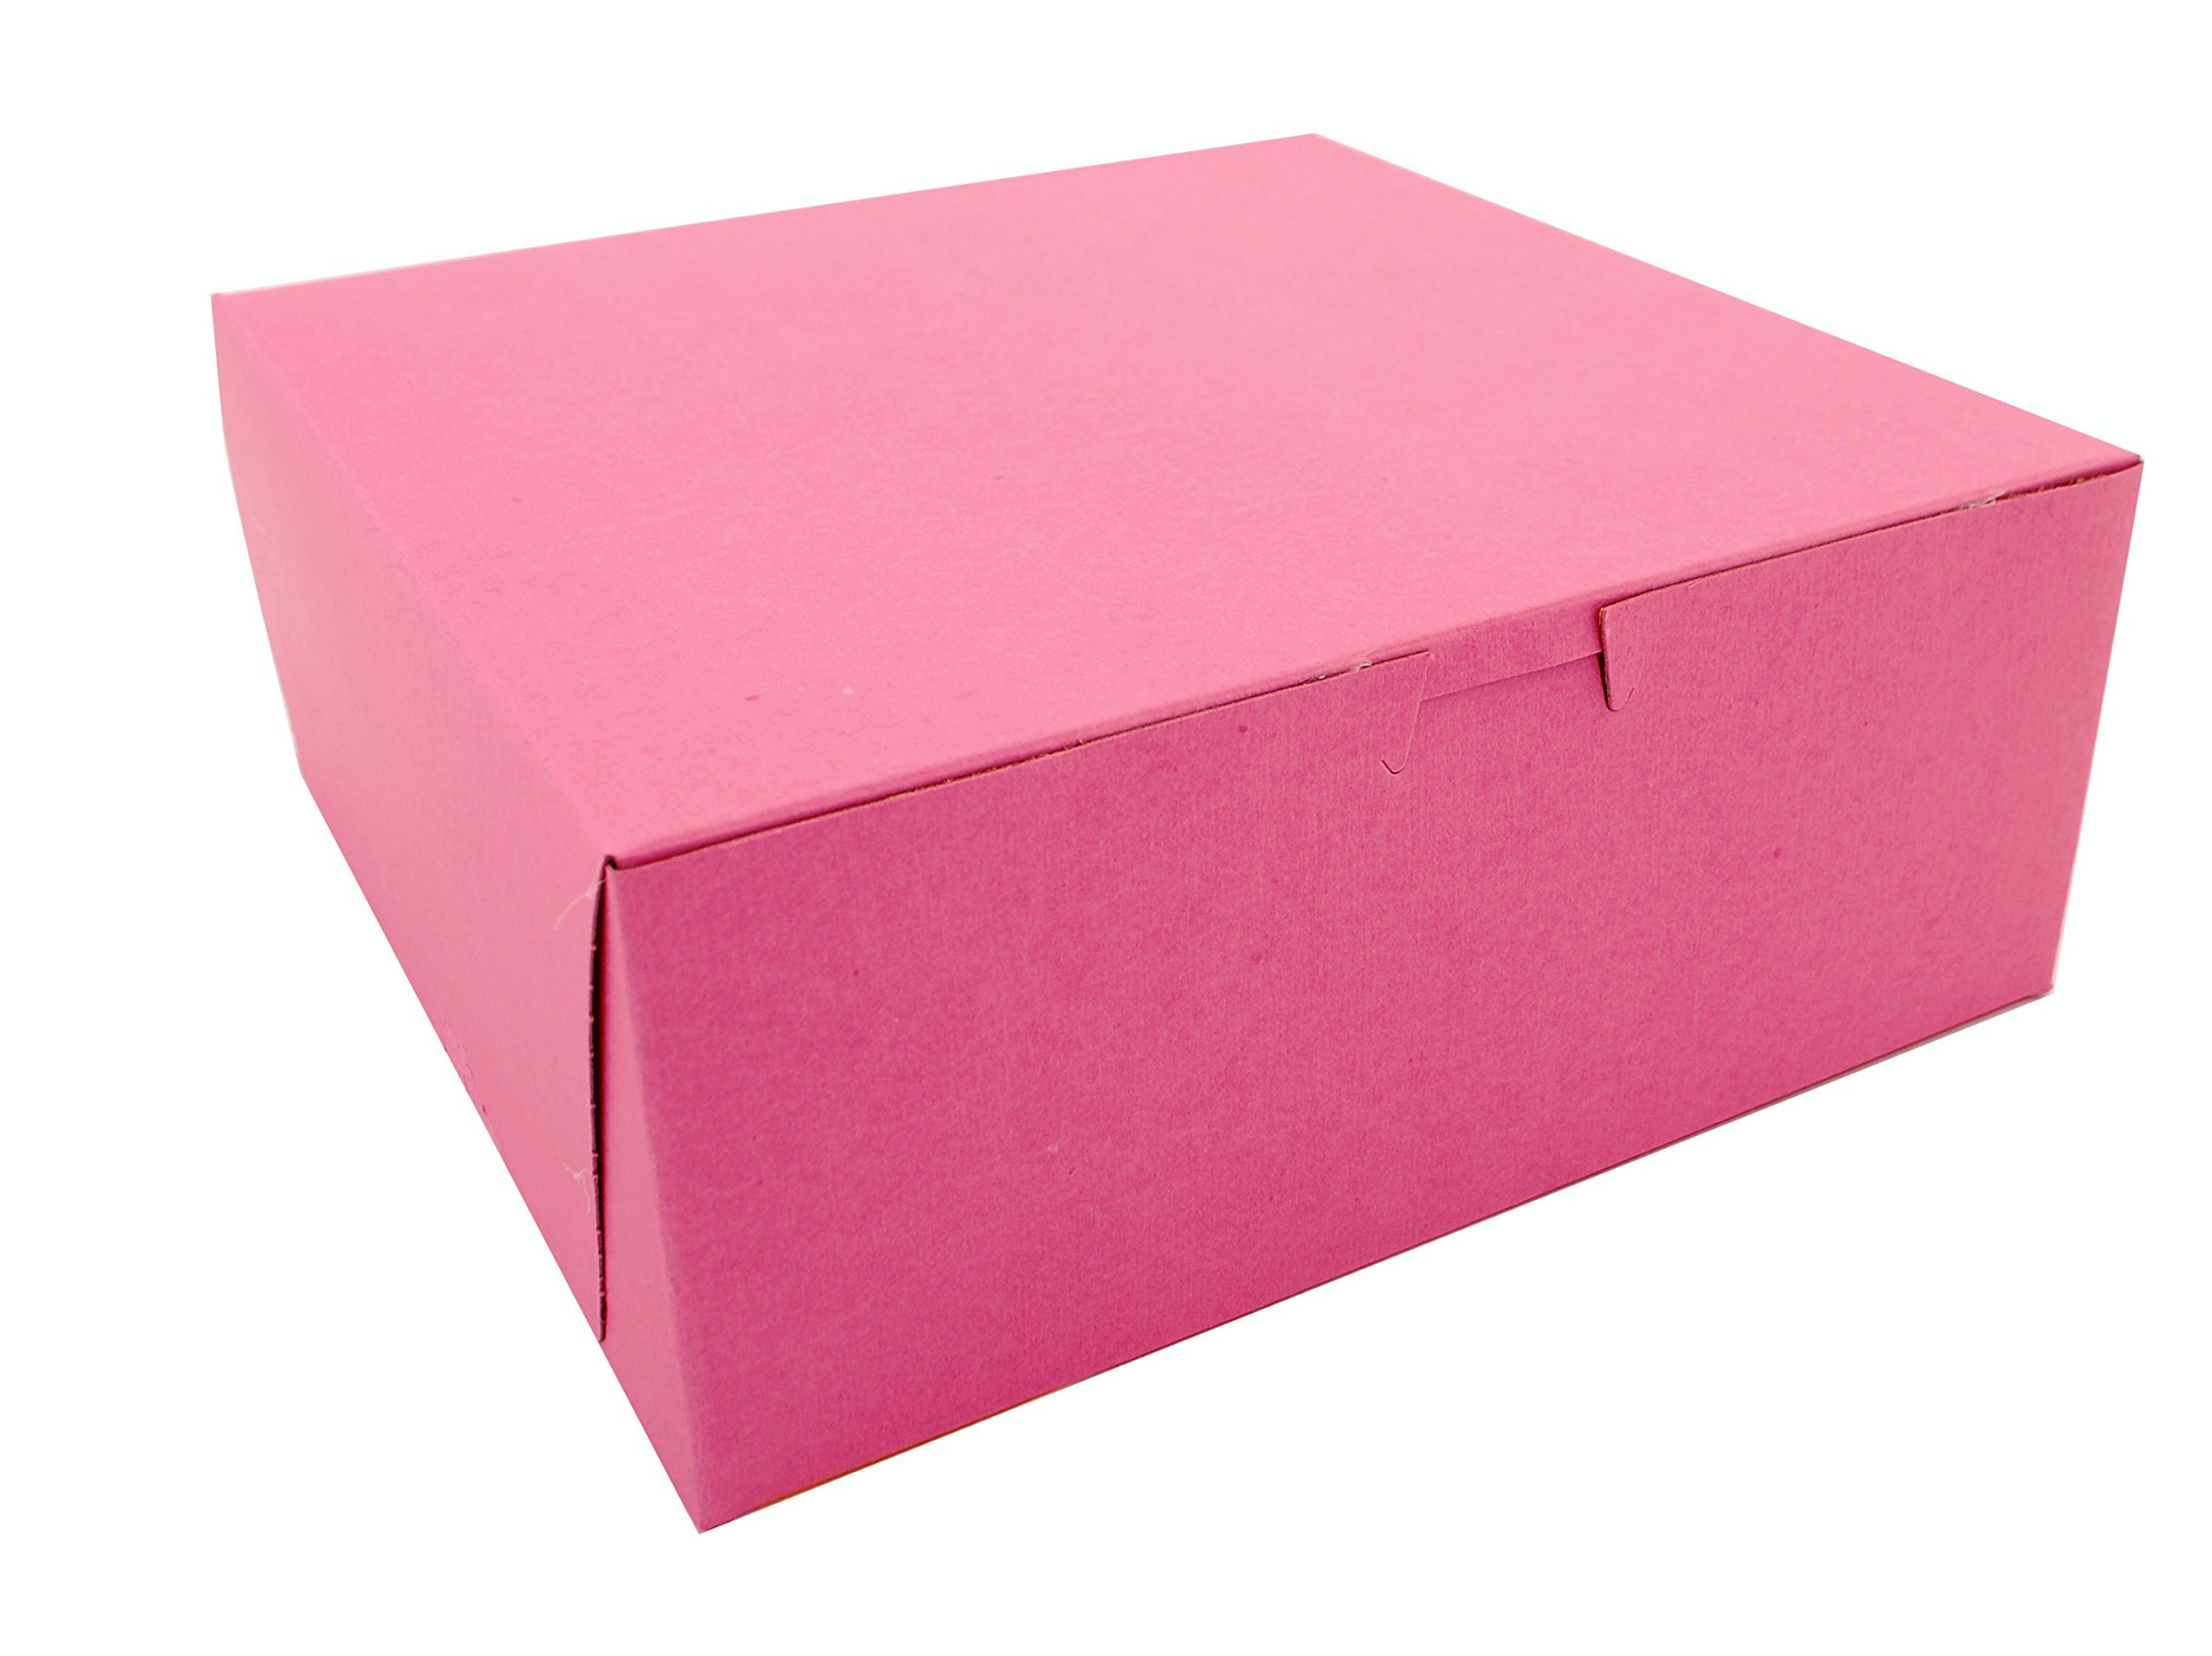 Southern Champion Tray 0873 Pink Paperboard Non-Window Lock-Corner Bakery Box, 10'' Length x 10'' Width x 4'' Height (Case of 100)